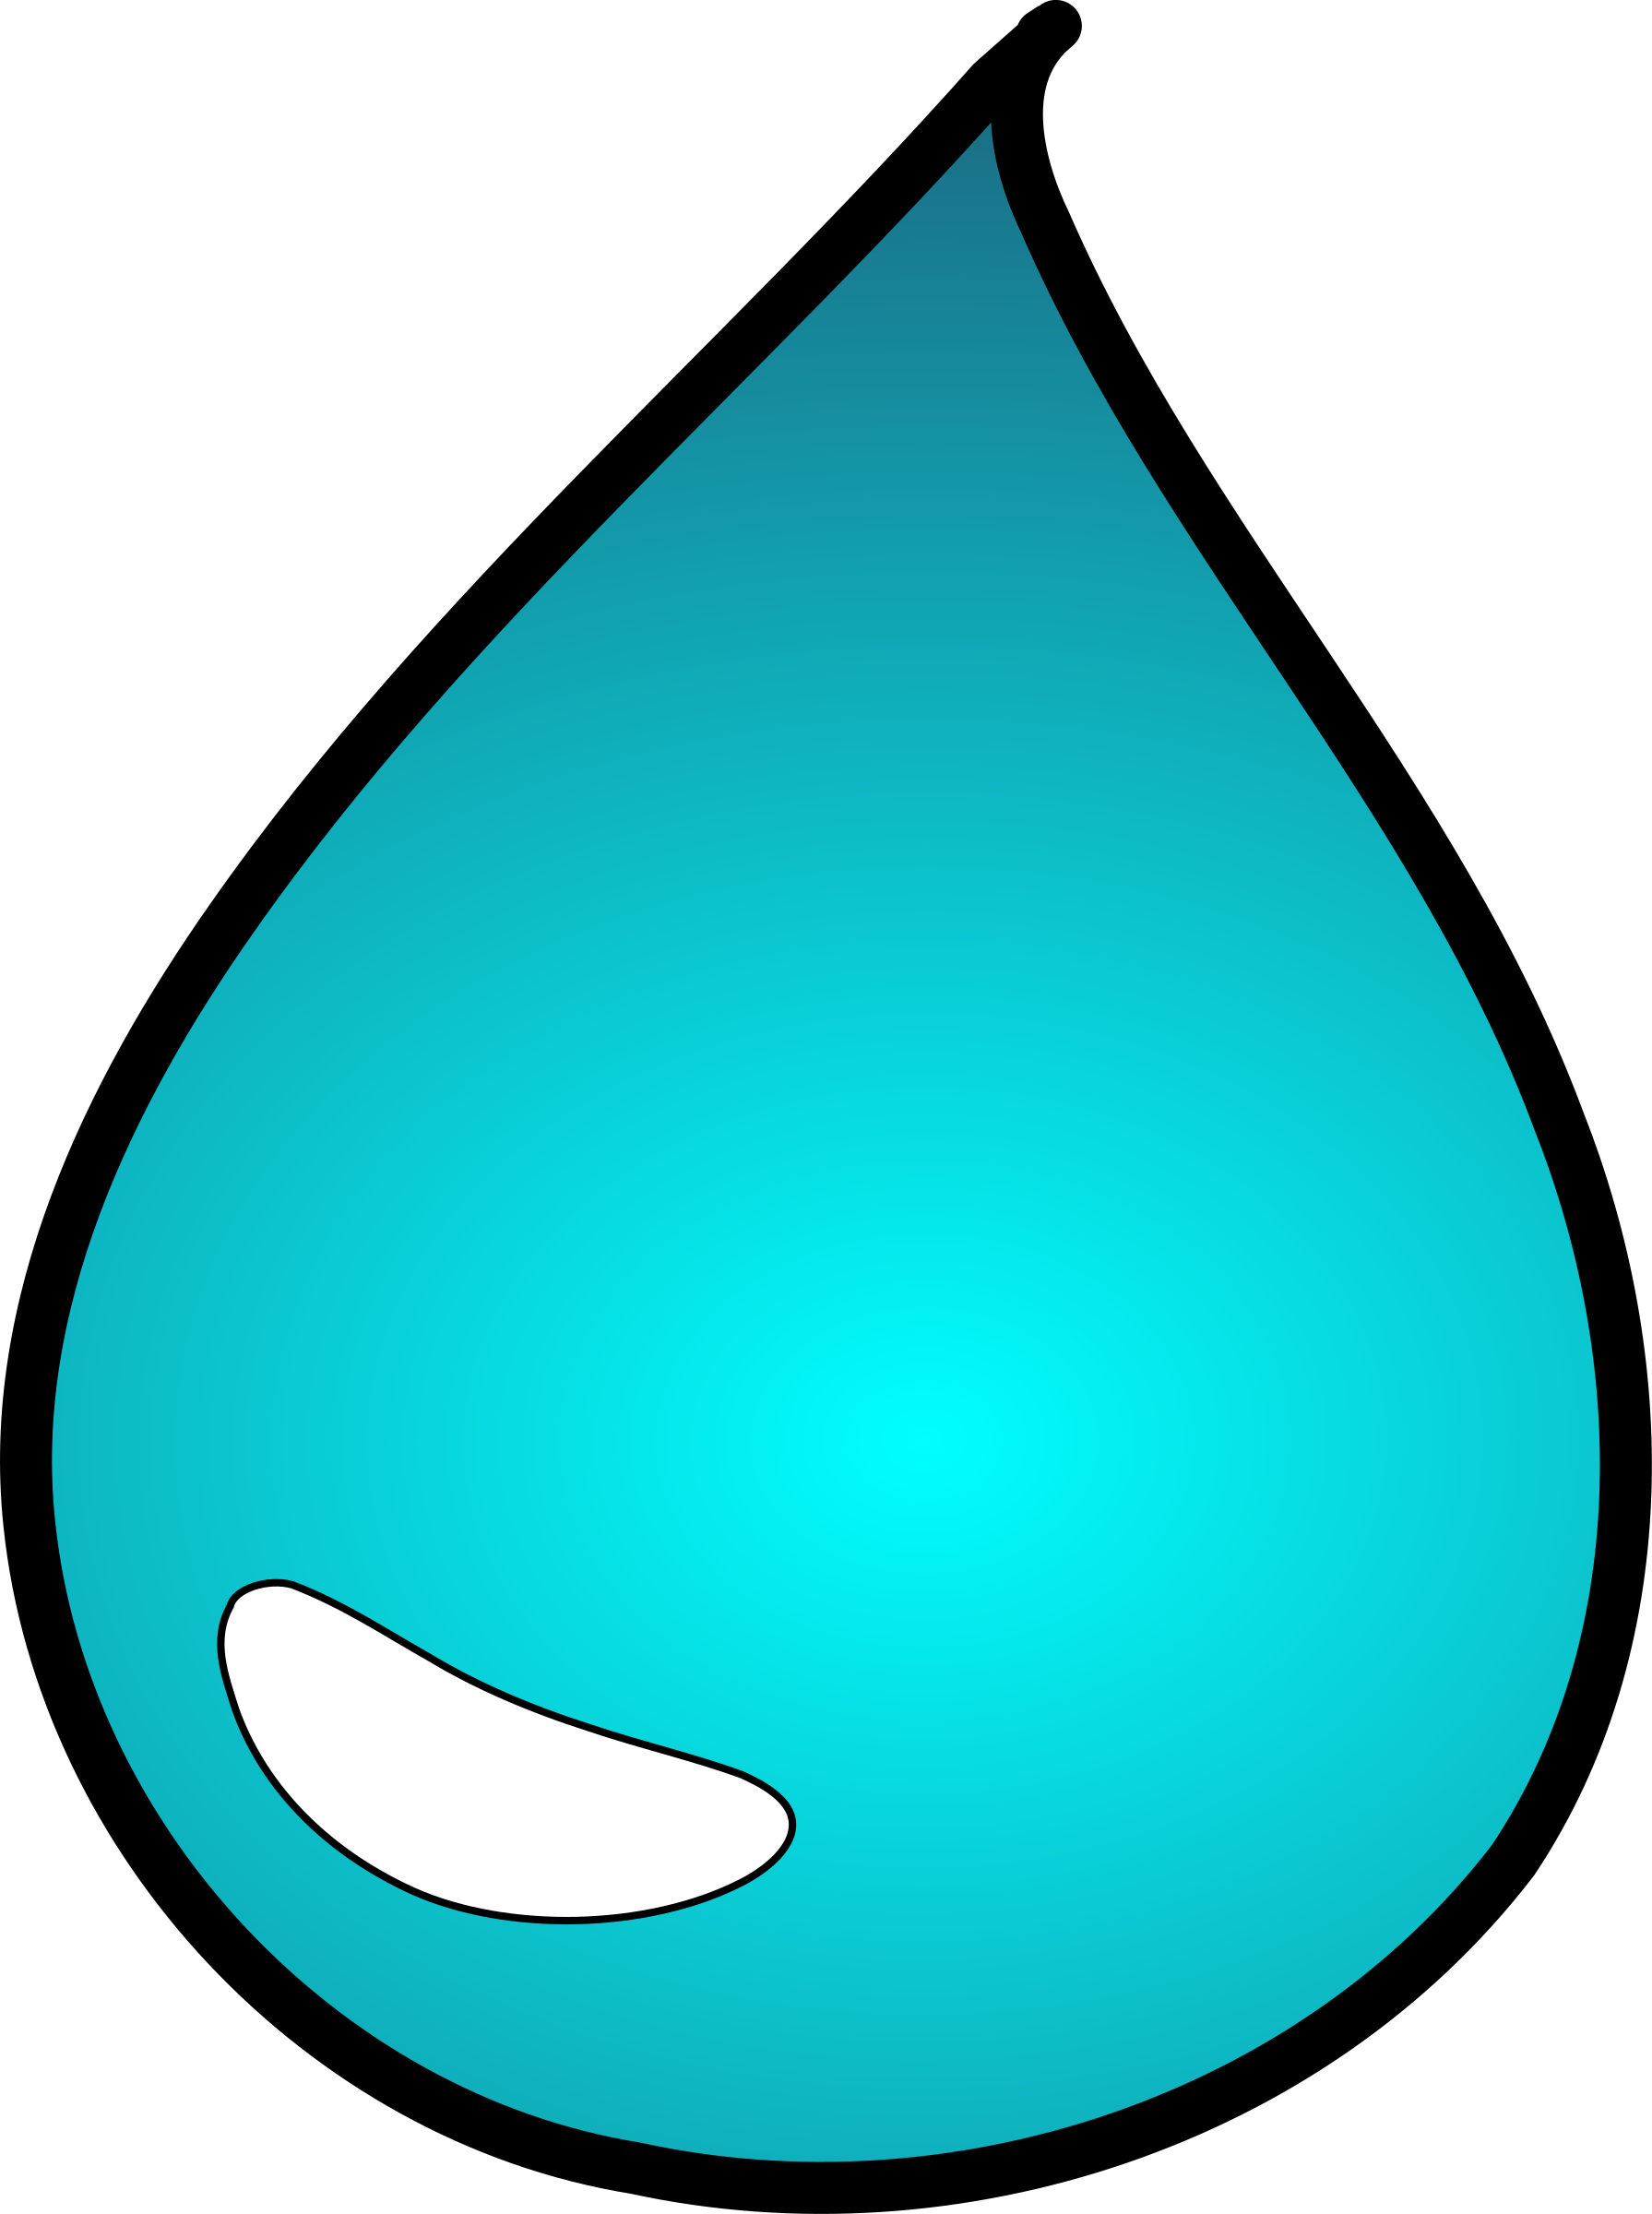 Water Drop by ginkgo